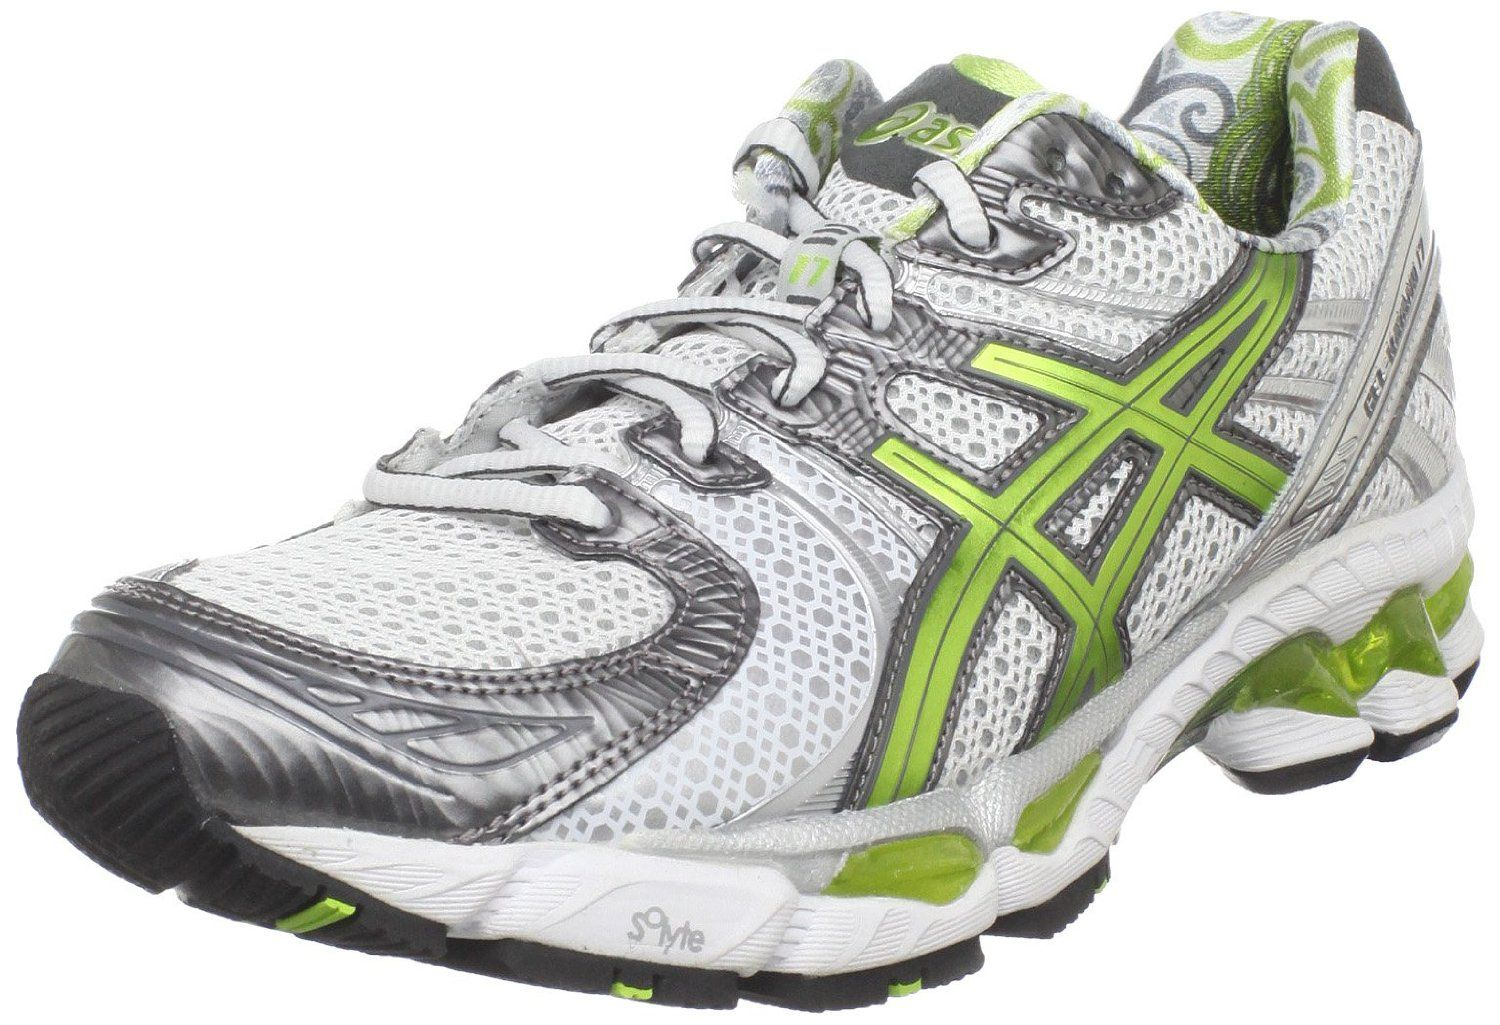 8bfe0d886b09 Asics Gel Kayano for  89.95 and free 2-day shipping. Such a good deal